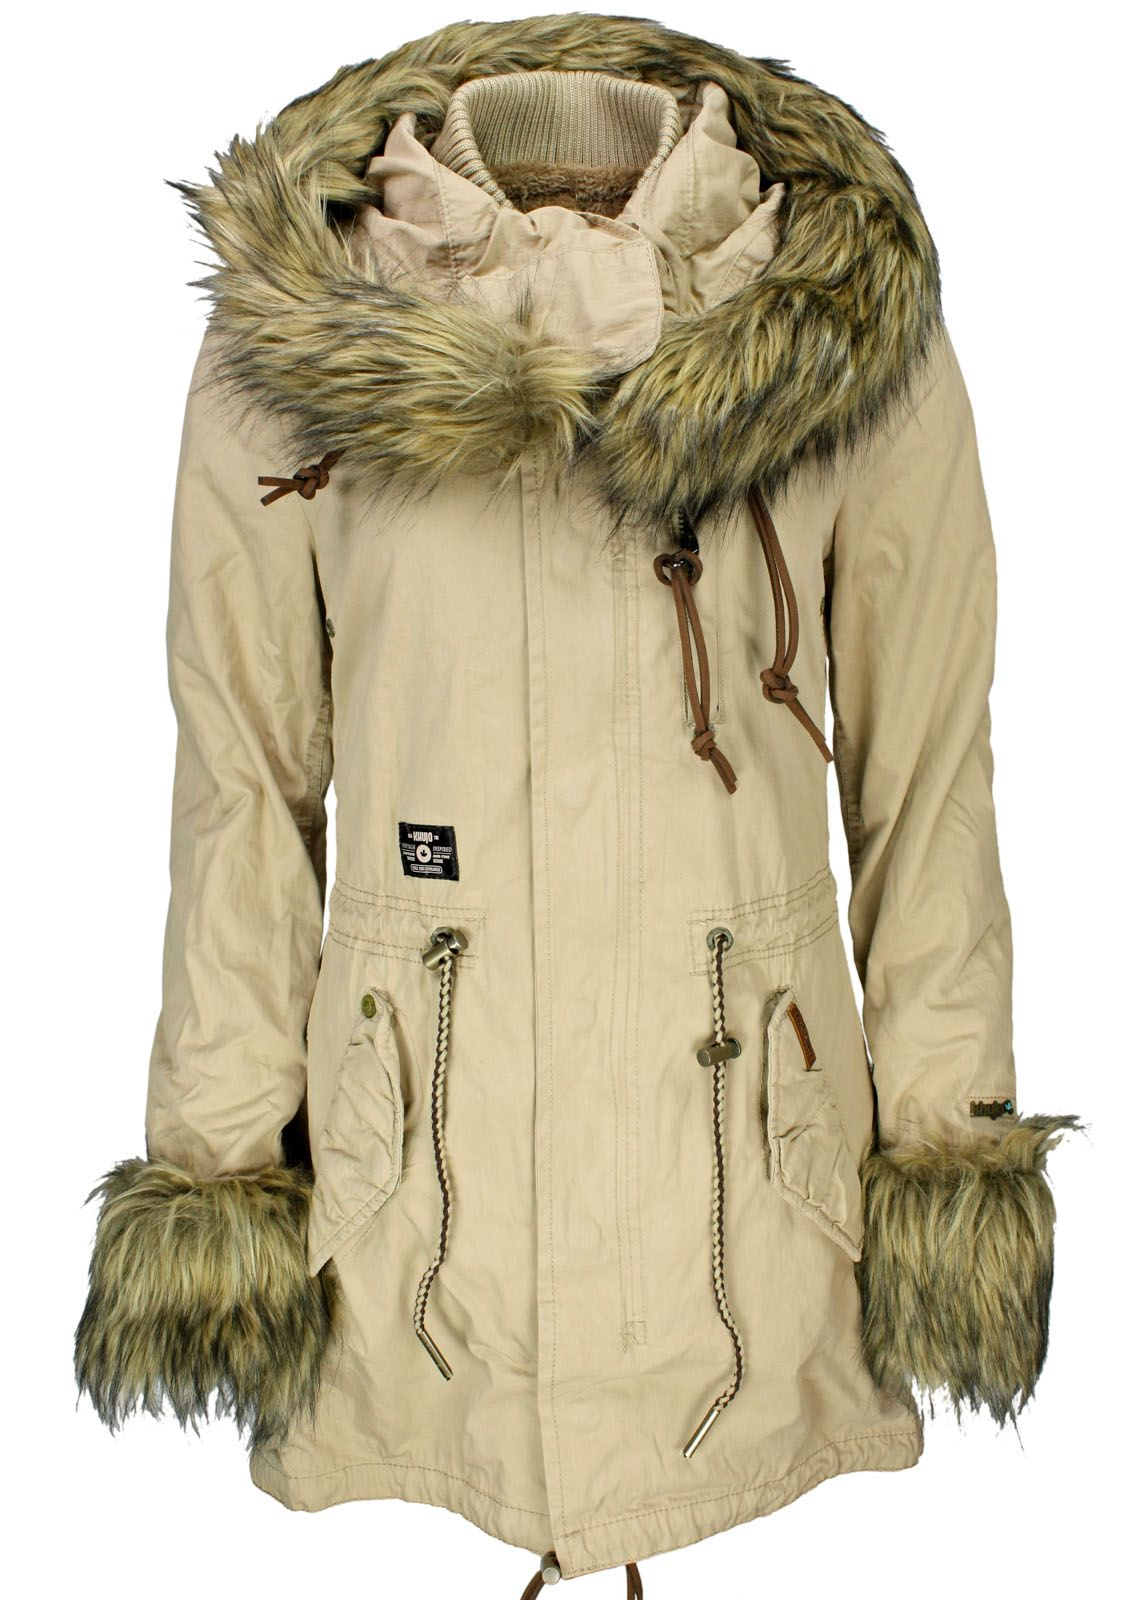 khujo damen winter jacke parka wolve ij cuffs sand ebay. Black Bedroom Furniture Sets. Home Design Ideas